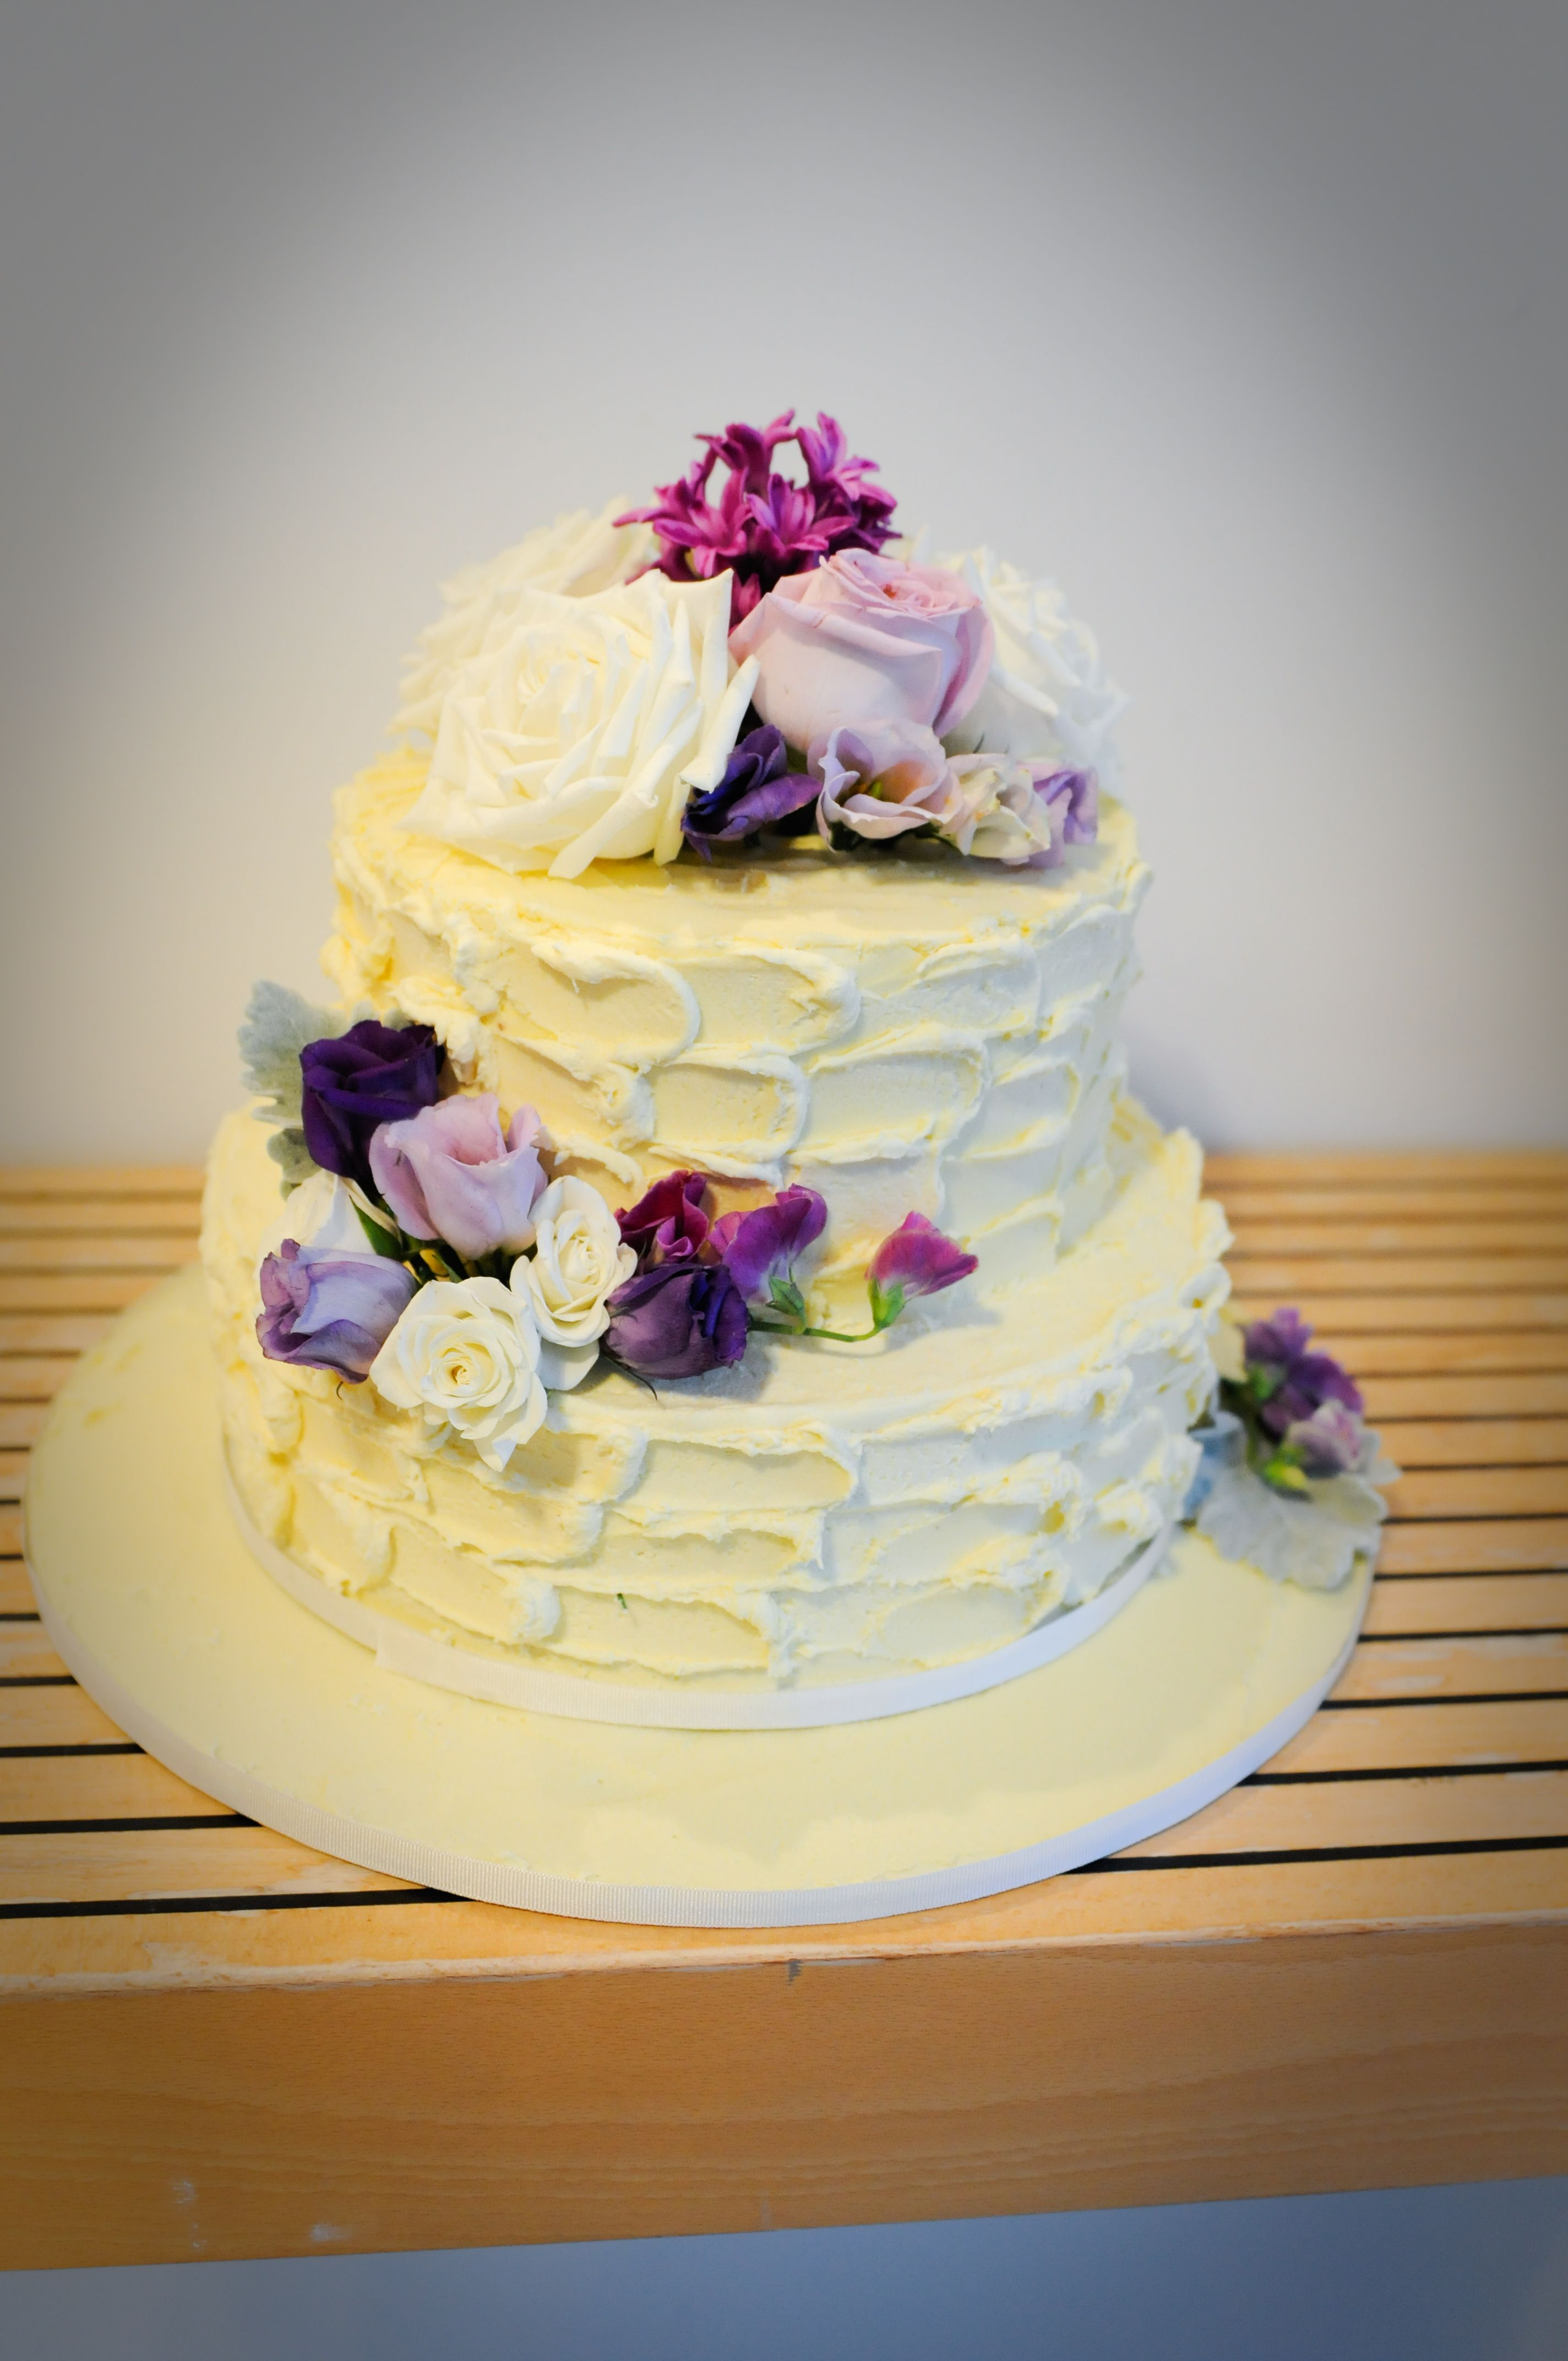 2 Tier White Chocolate Ganache Cake with fresh flowers | Bridal ...